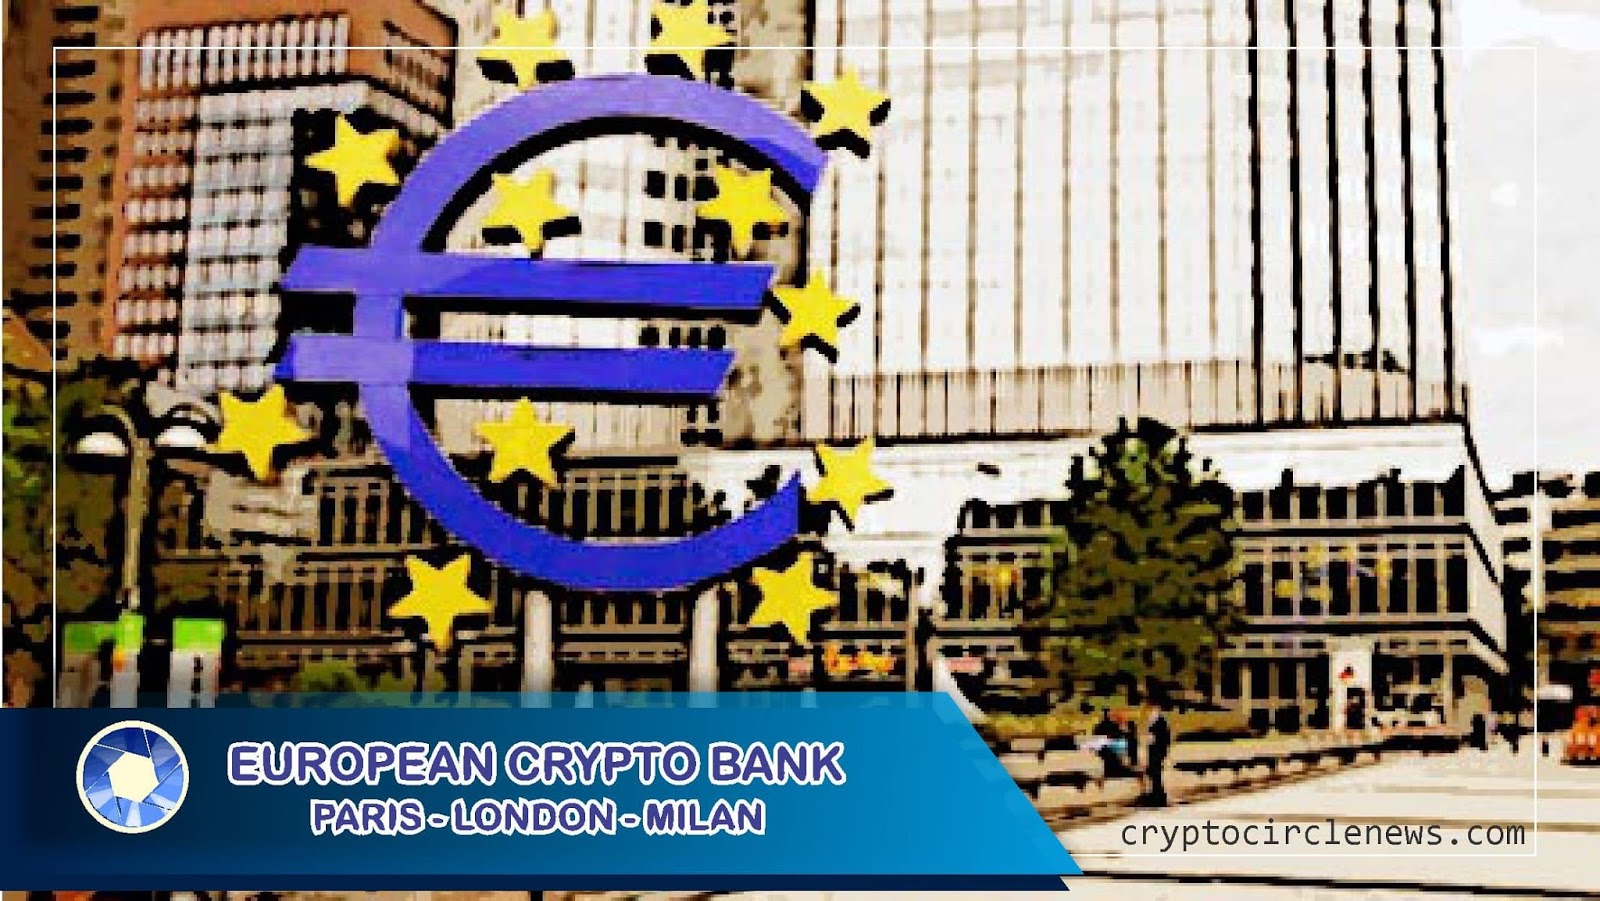 European Crypto Bank : Management dan Private Banking Era Ekomoni Digital